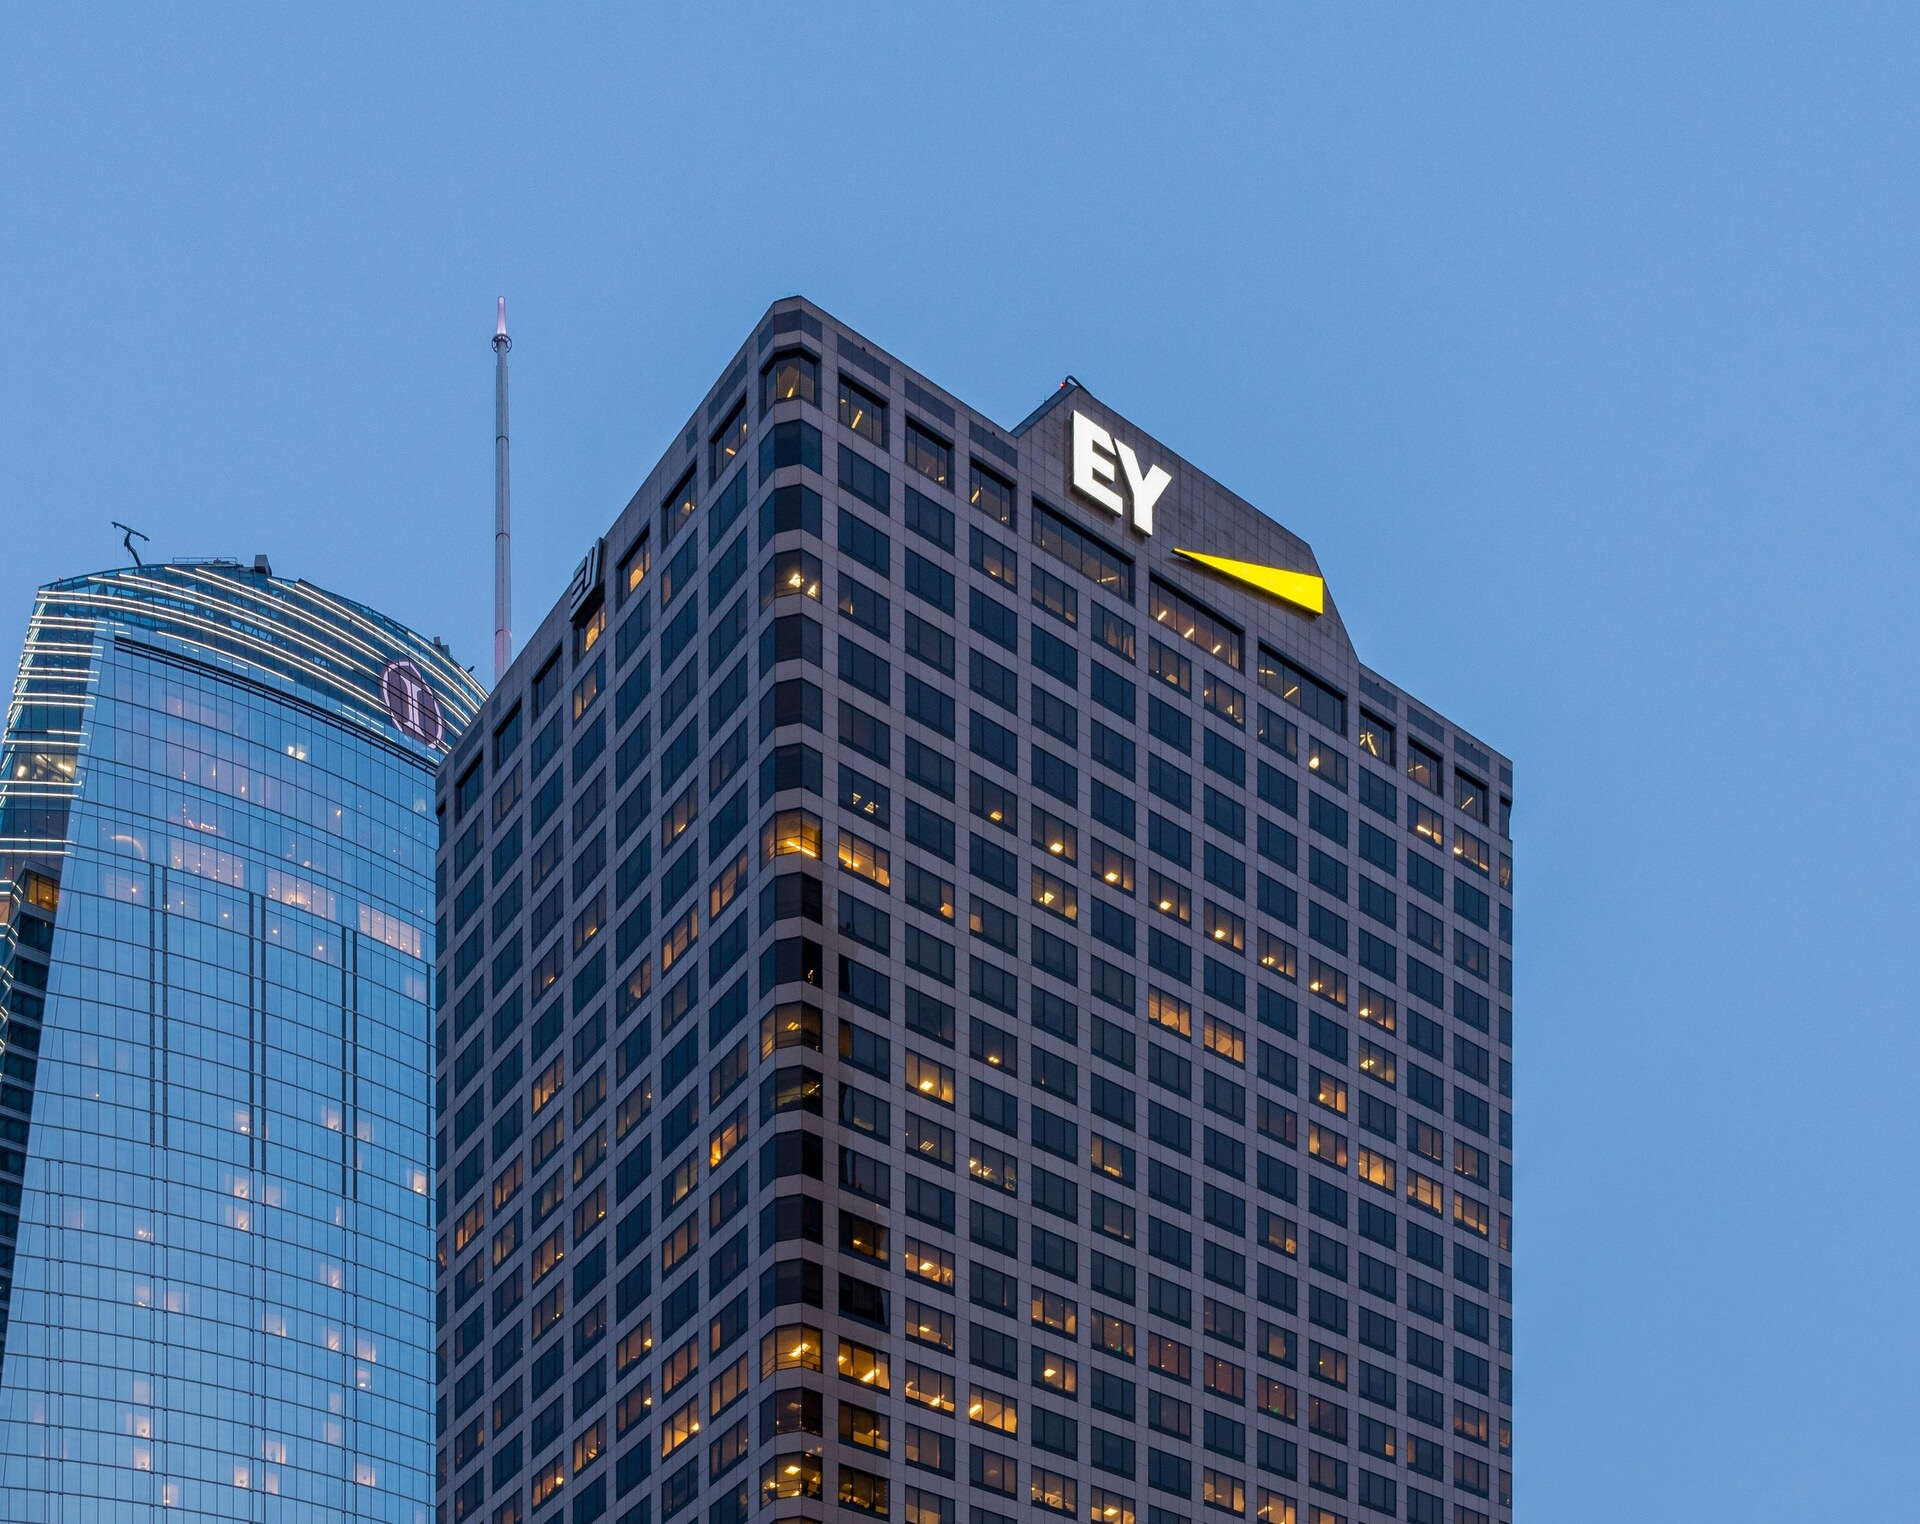 View looking up at a skyscraper that says EY.